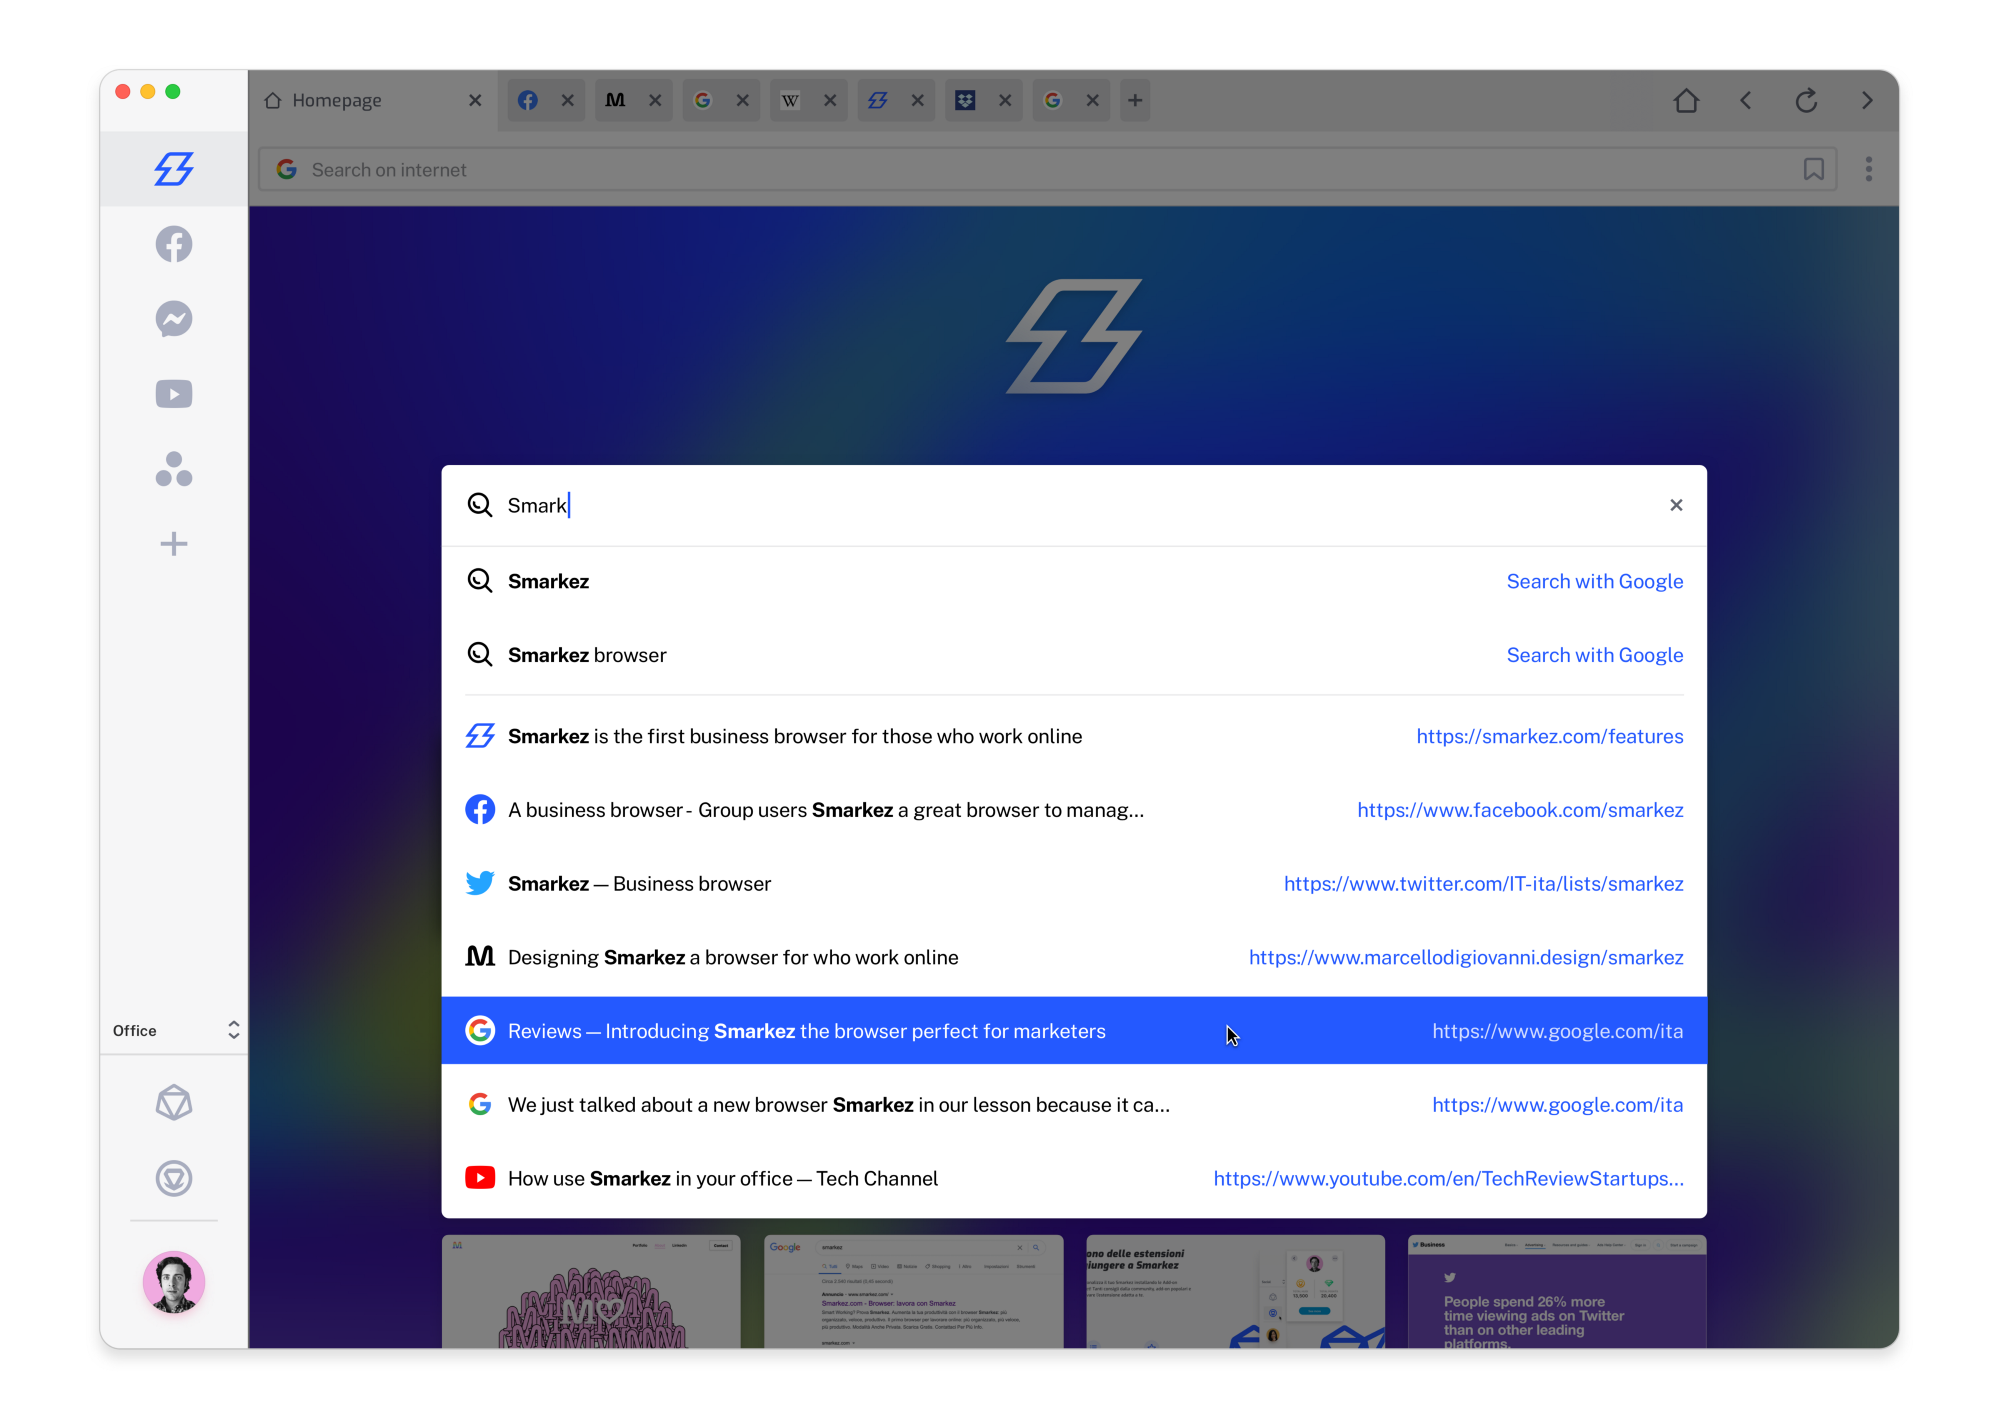 Smarkez design for a browser—Safari 2021 or Chrome are not for who work online